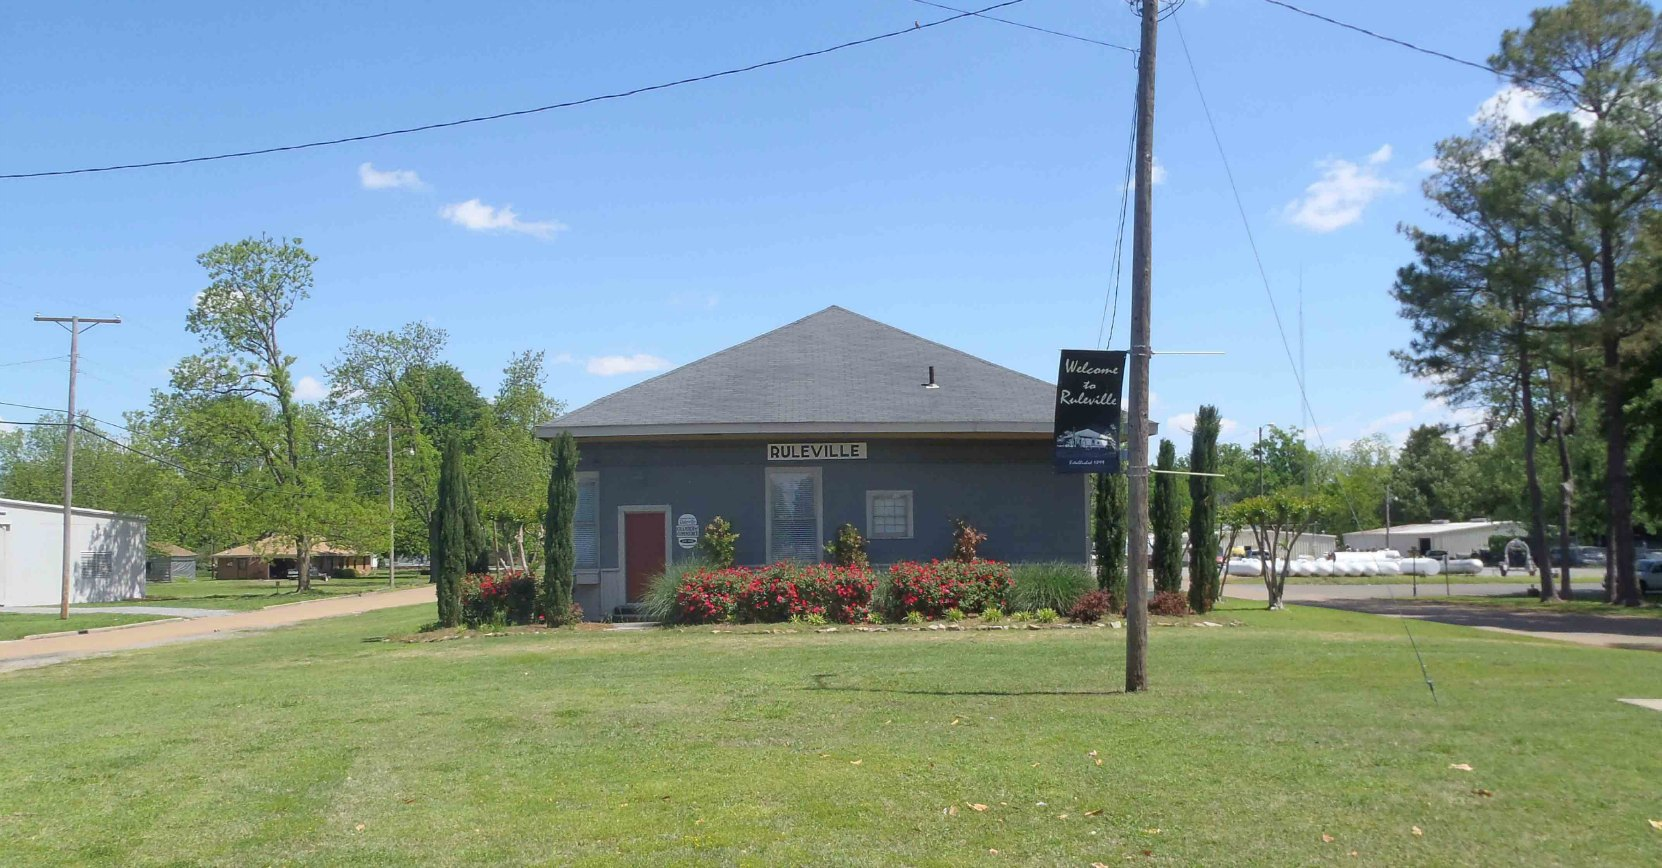 The former Ruleville Rail Depot, now the Ruleville Chamber of Commerce.